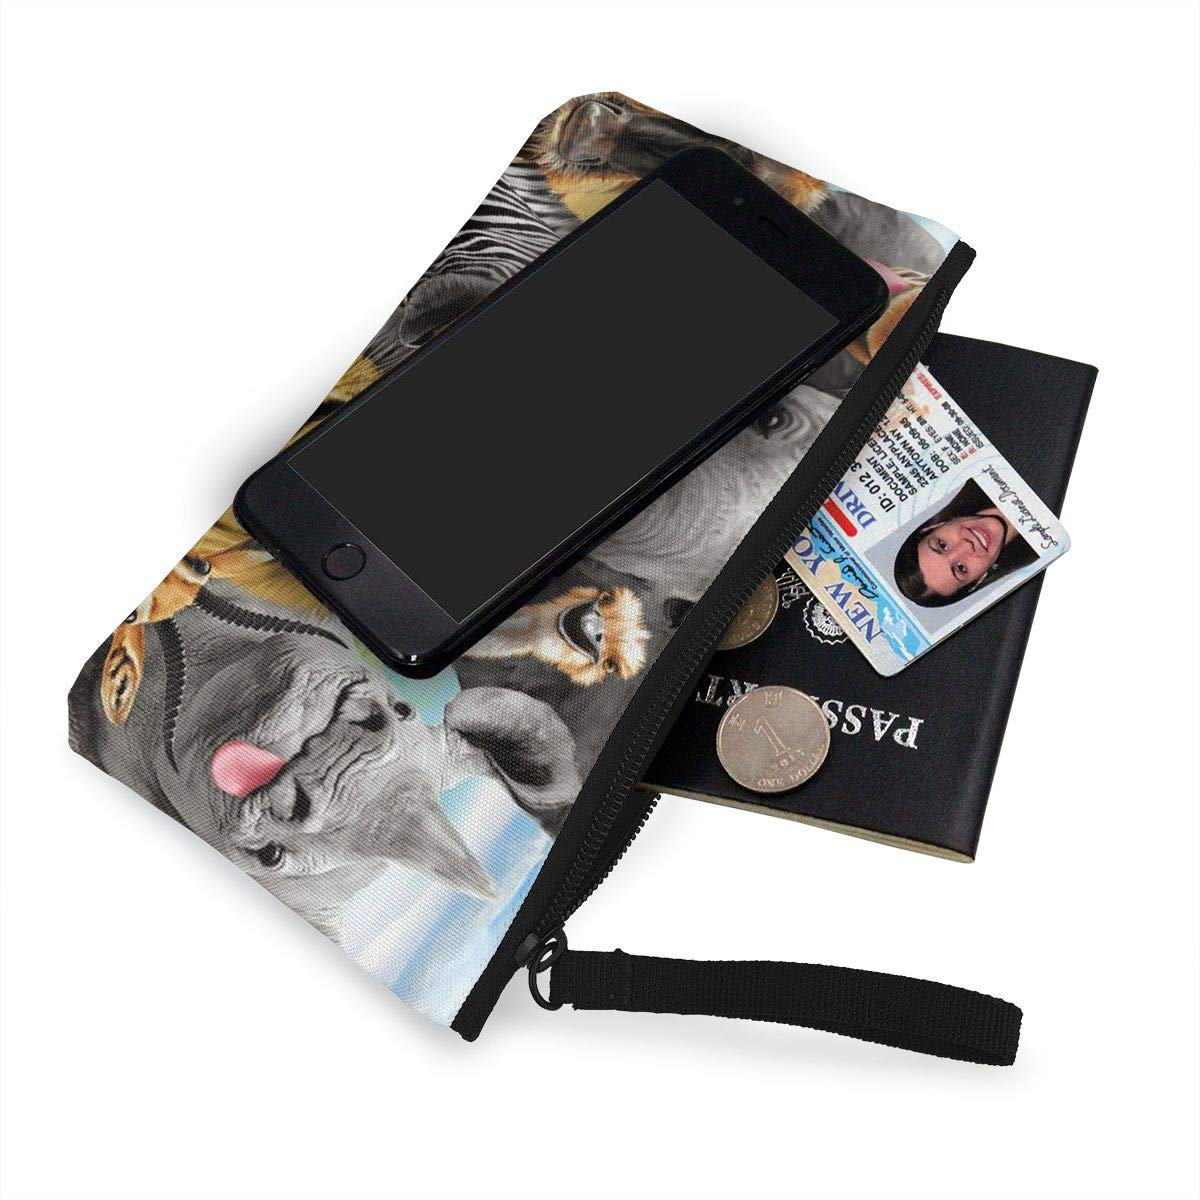 Safari Animals Womens Canvas Coin Purse Mini Change Wallet Pouch-Card Holder Phone Wallet Storage Bag,Pencil Pen Case